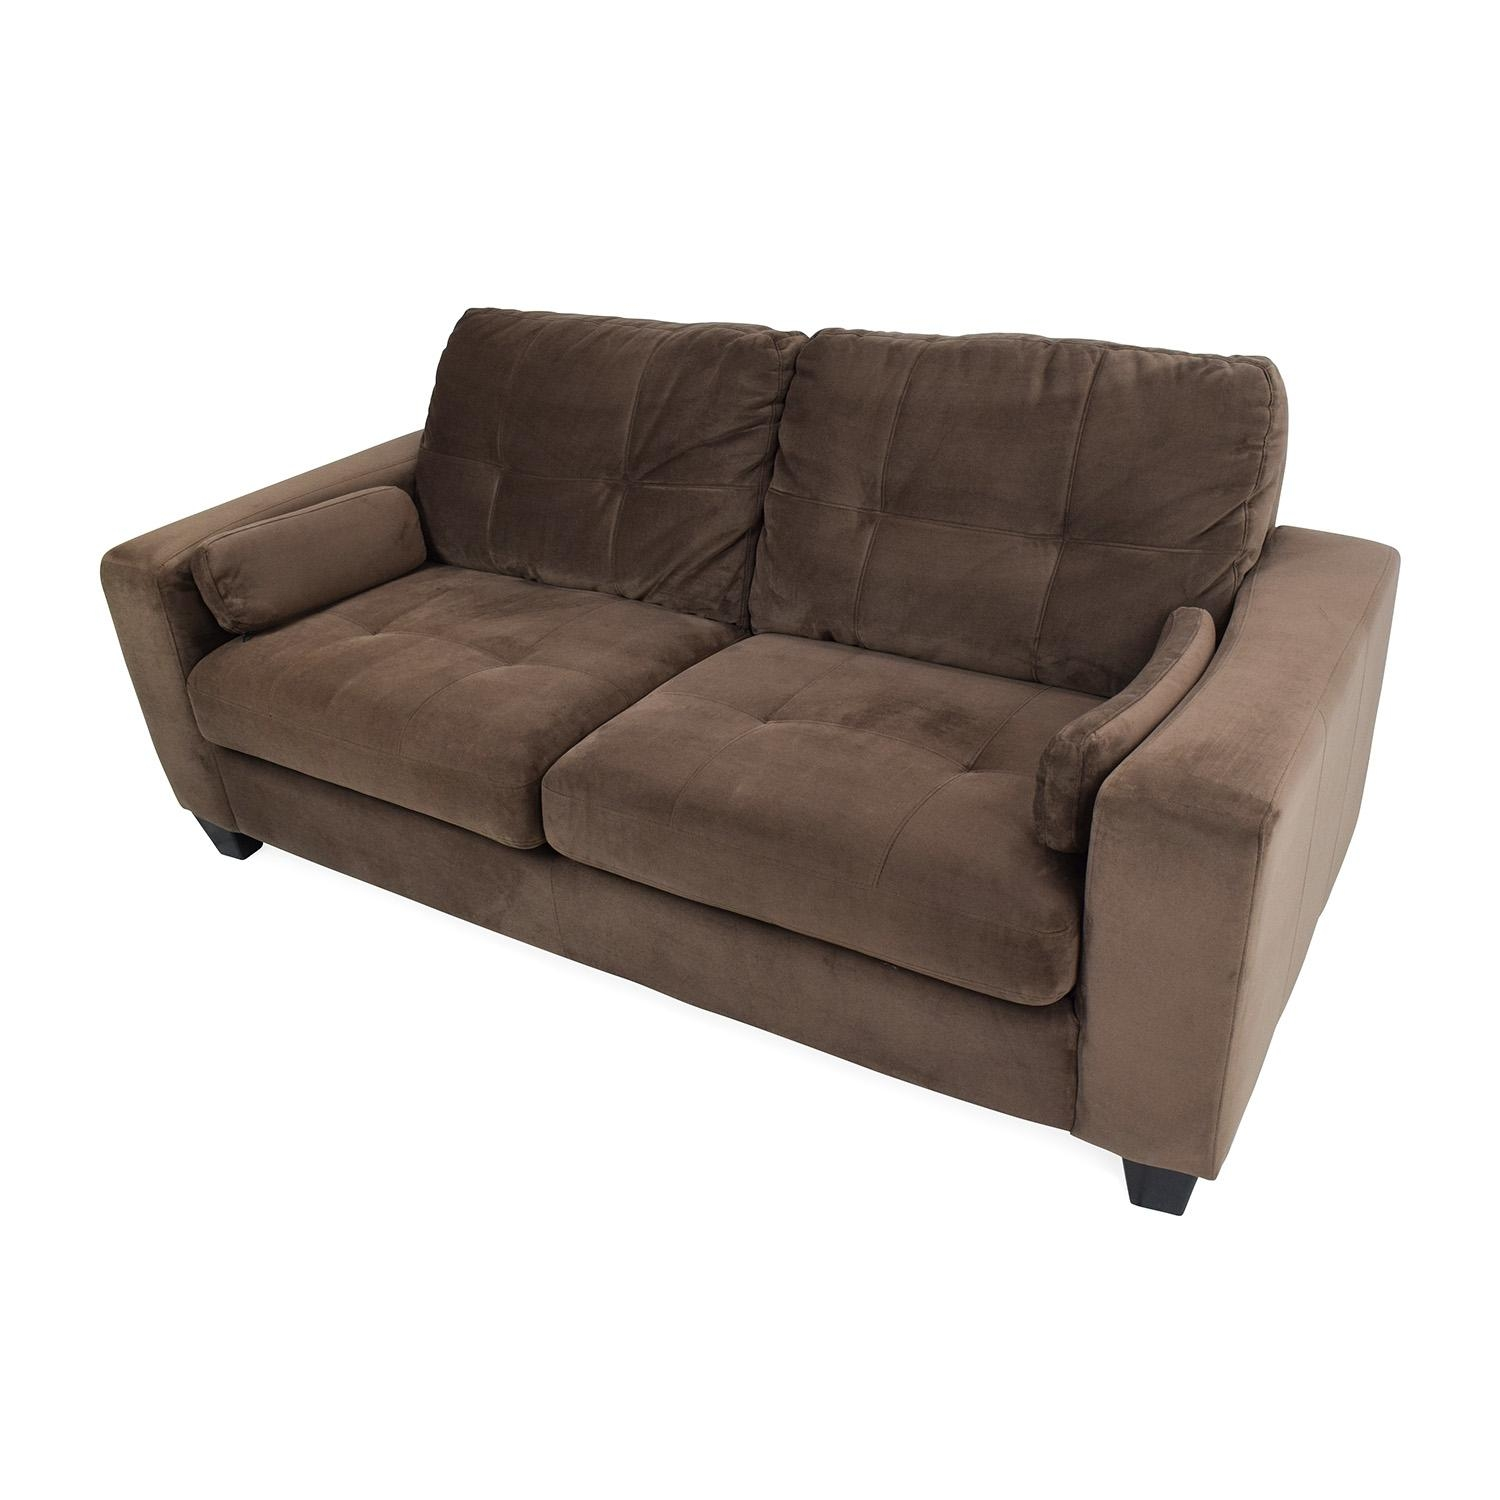 56% Off – Jennifer Convertibles Jennifer Convertibles Full Size With Jennifer Sofas (Image 2 of 20)